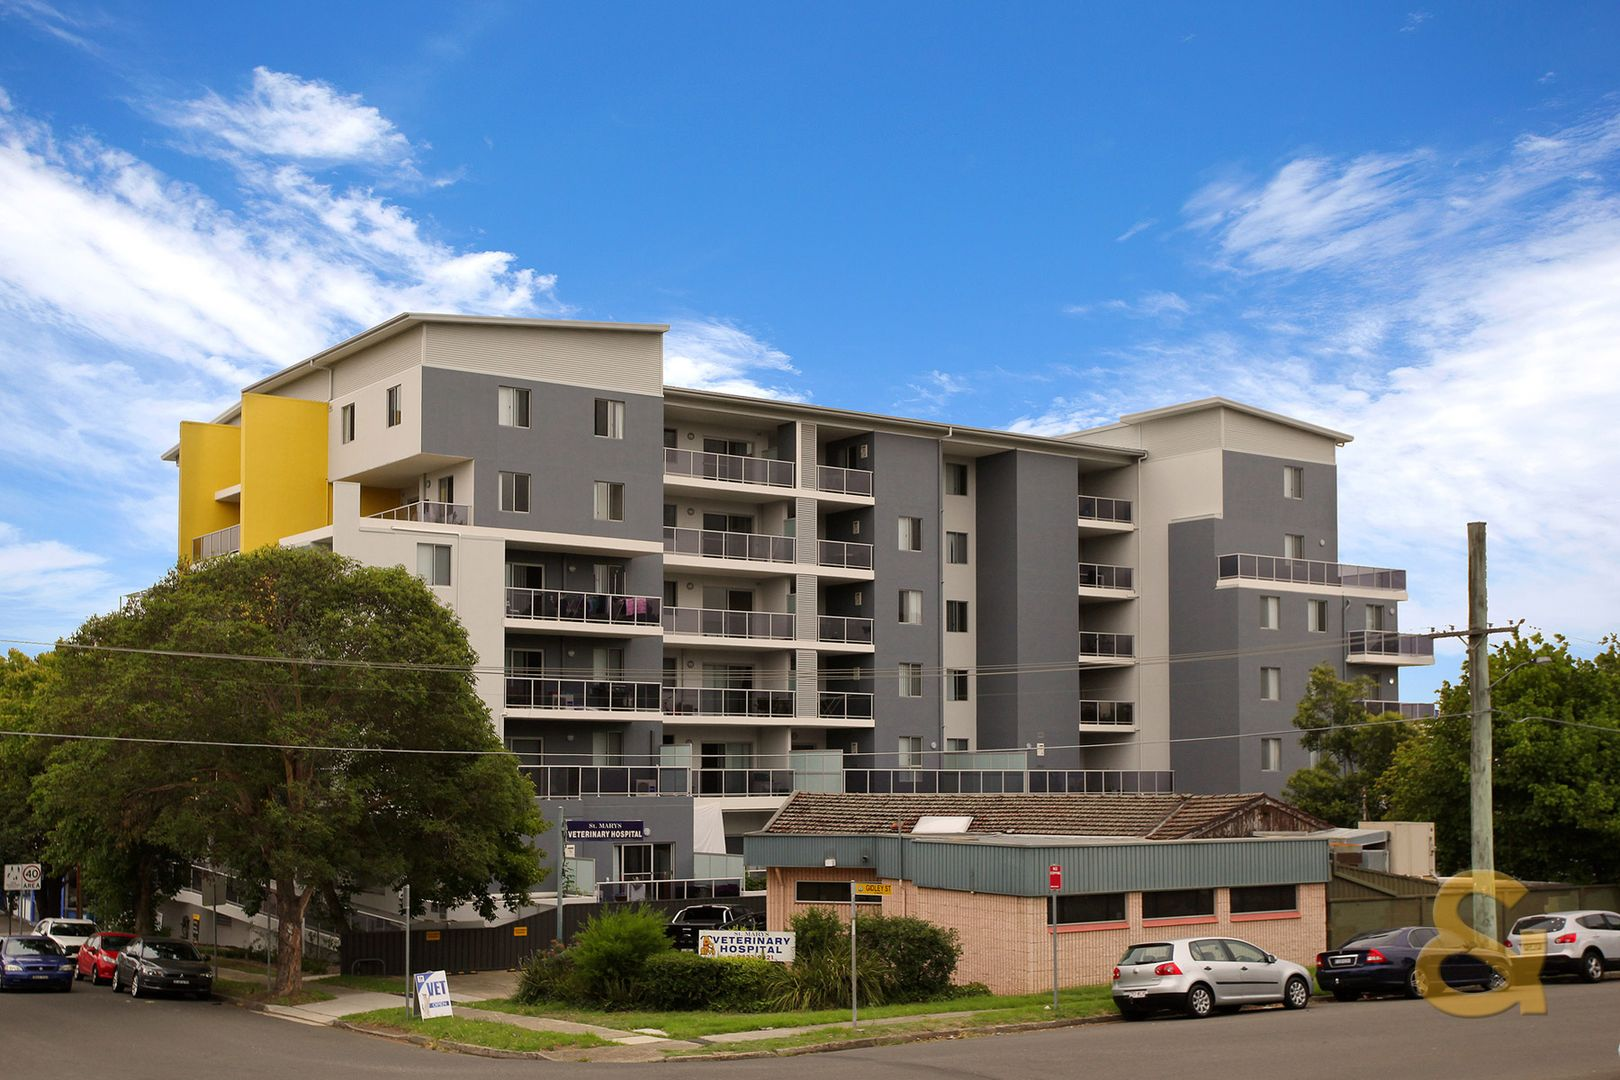 26/51-53 King Street, St Marys NSW 2760, Image 0